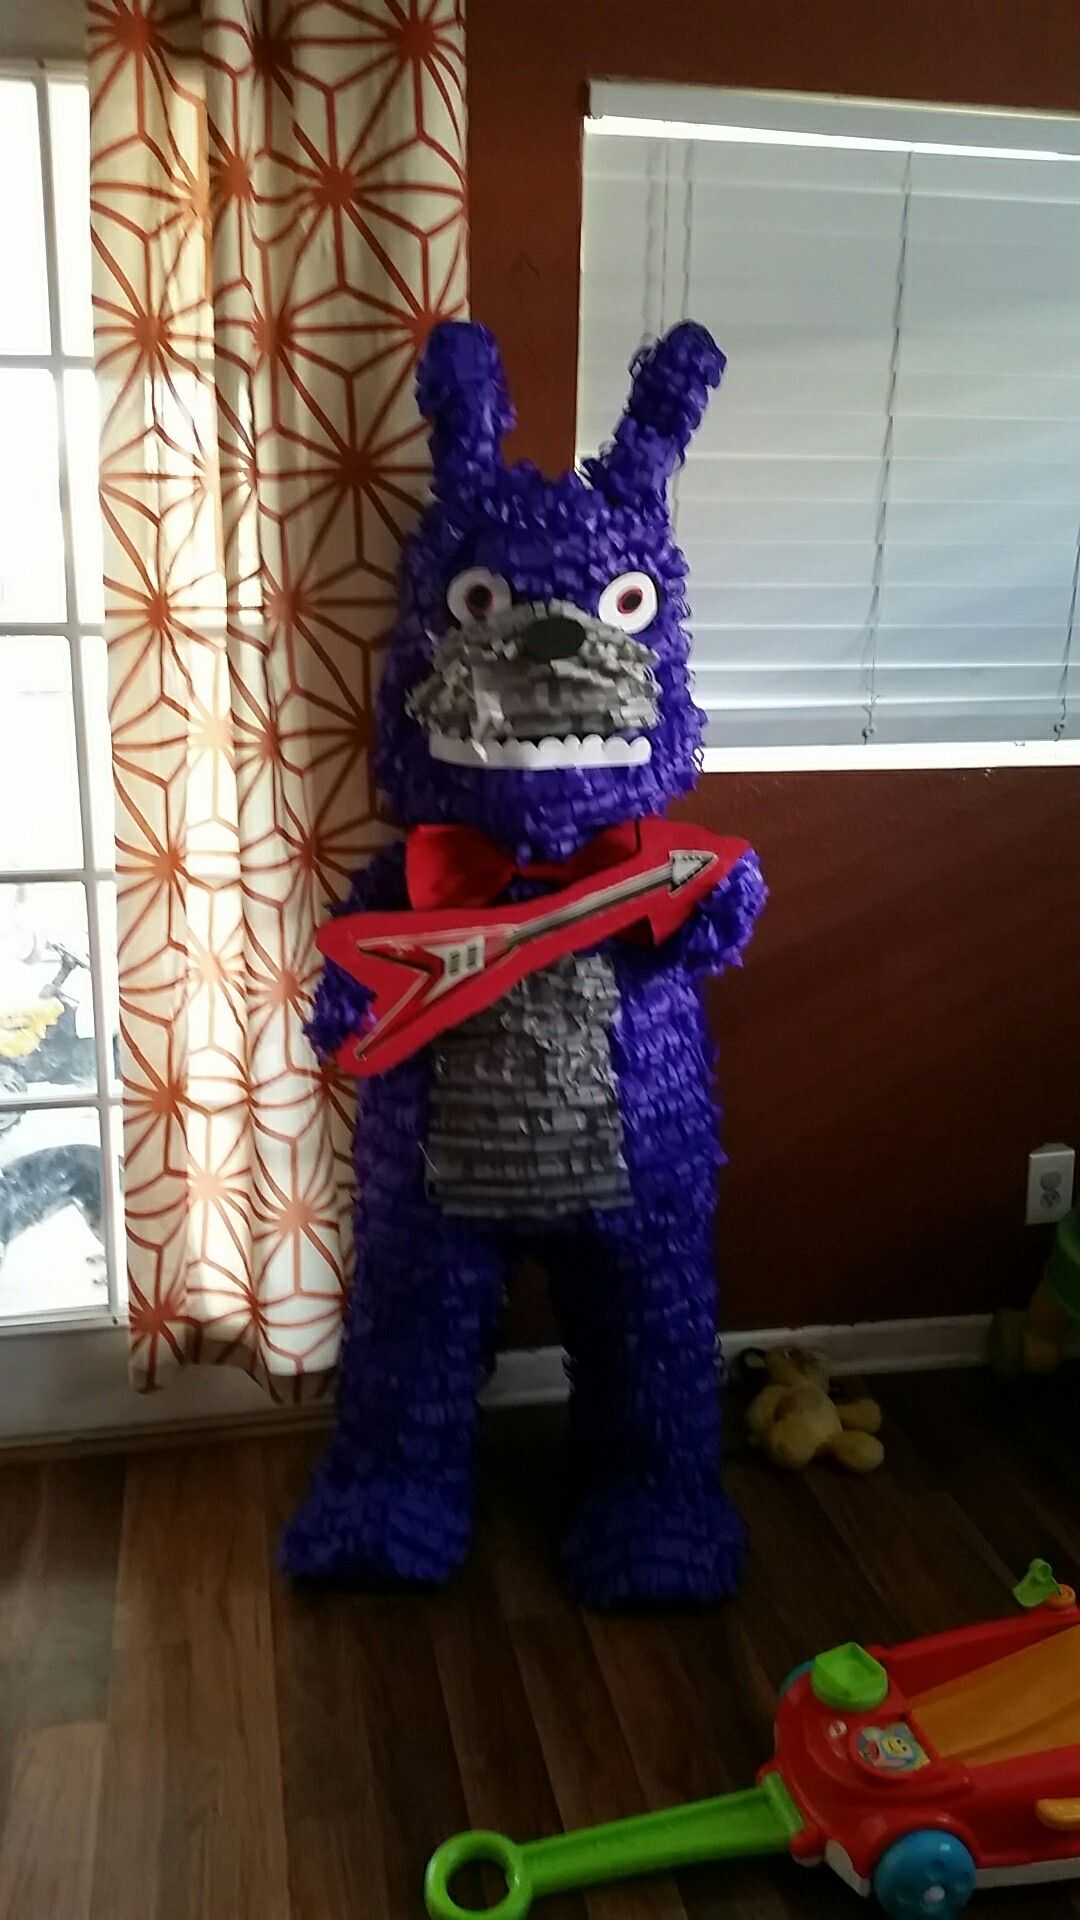 Fnaf bonnie costume for sale - Bonnie Pi Ata Fnaf Five Night S At Freddy